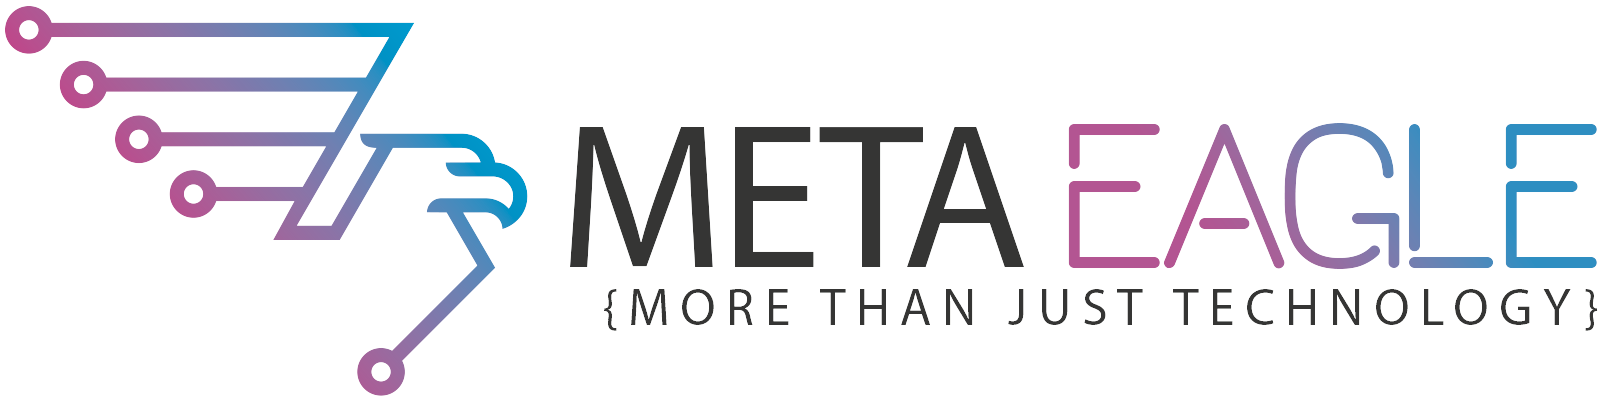 Meta Eagle Ltd